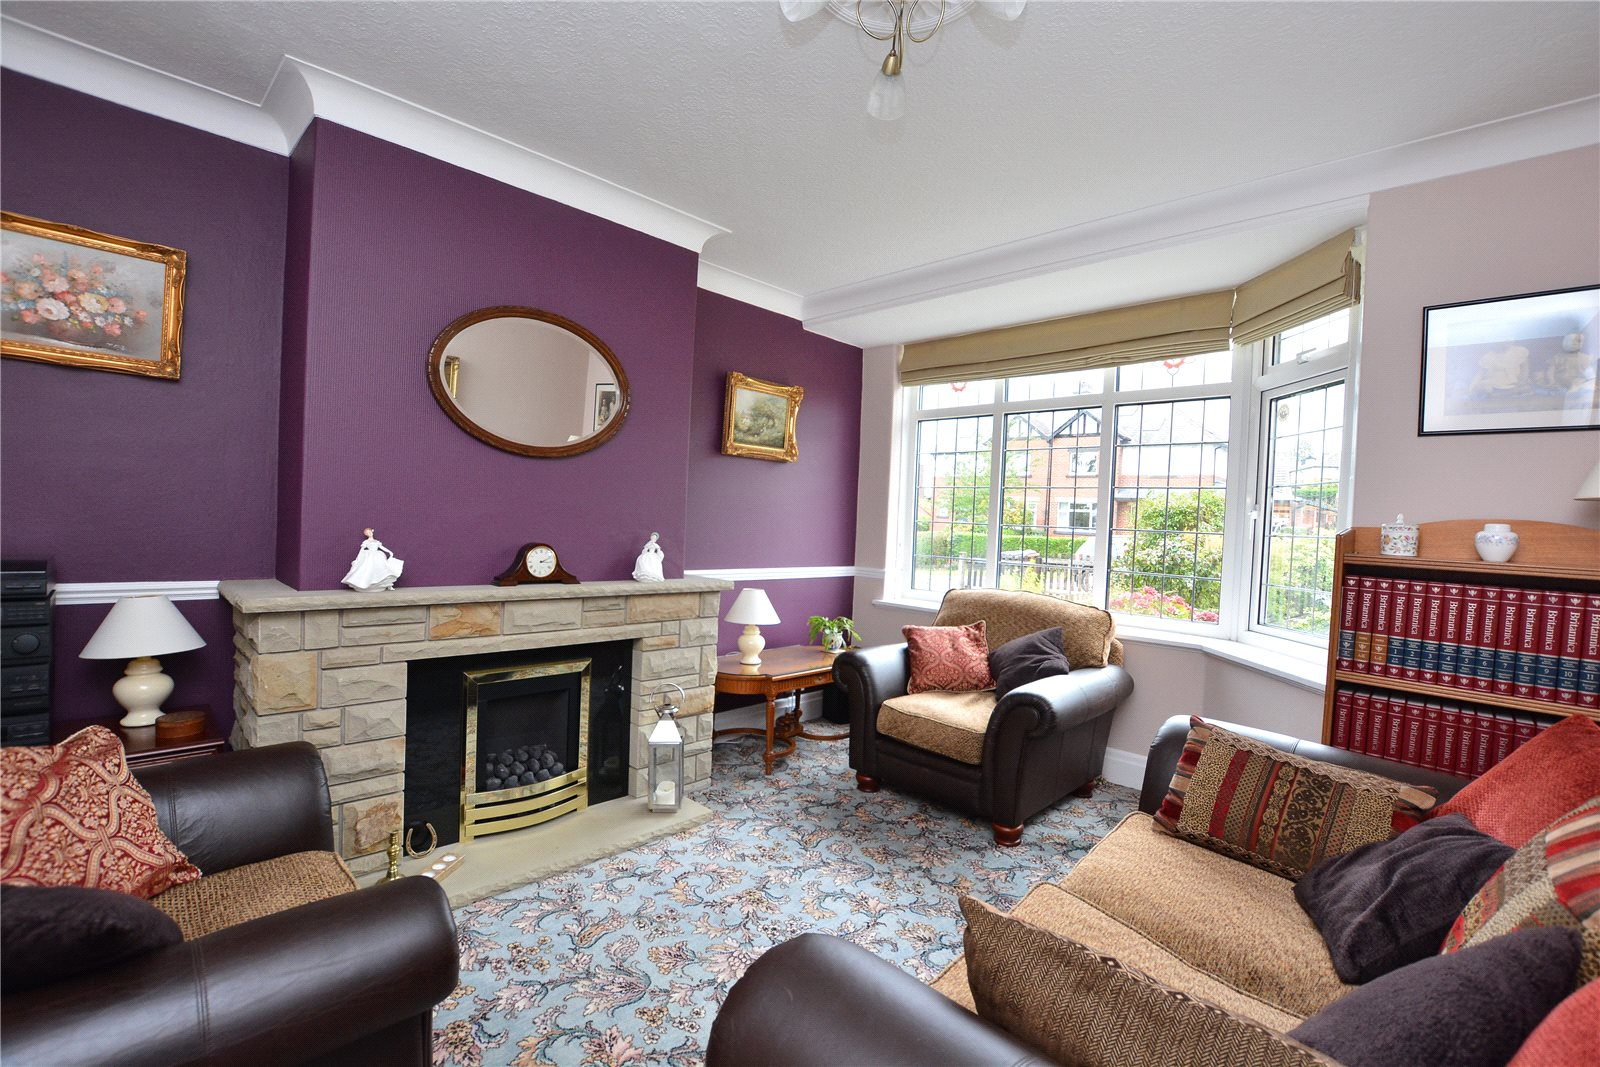 Property for sale in Horsforth, interior reception room